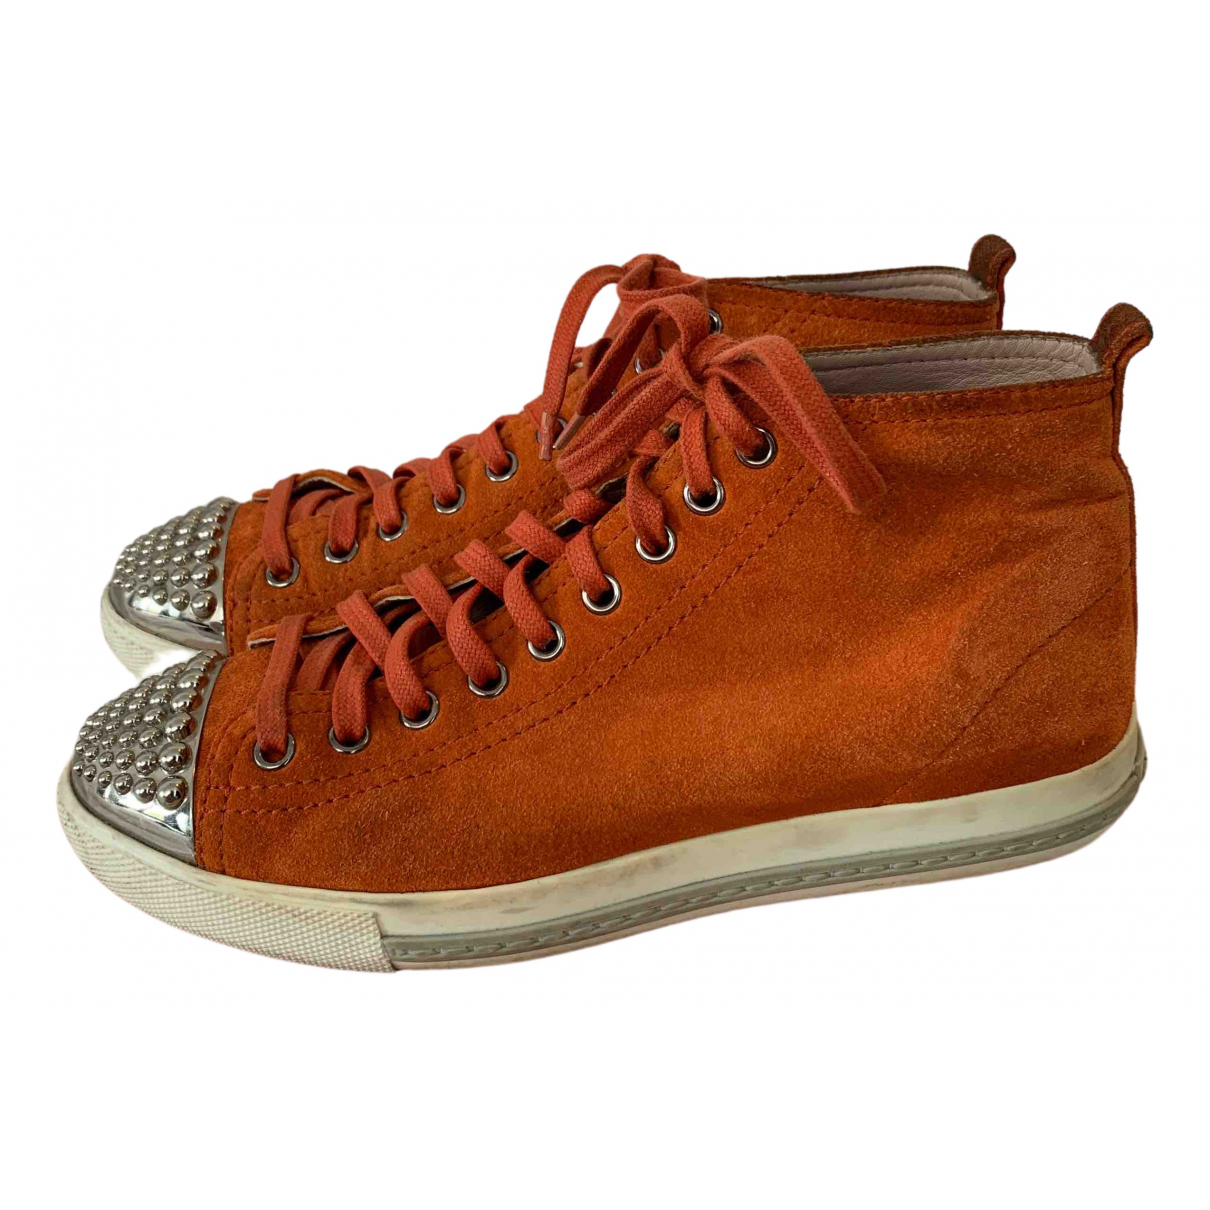 Miu Miu \N Orange Suede Trainers for Women 36 EU